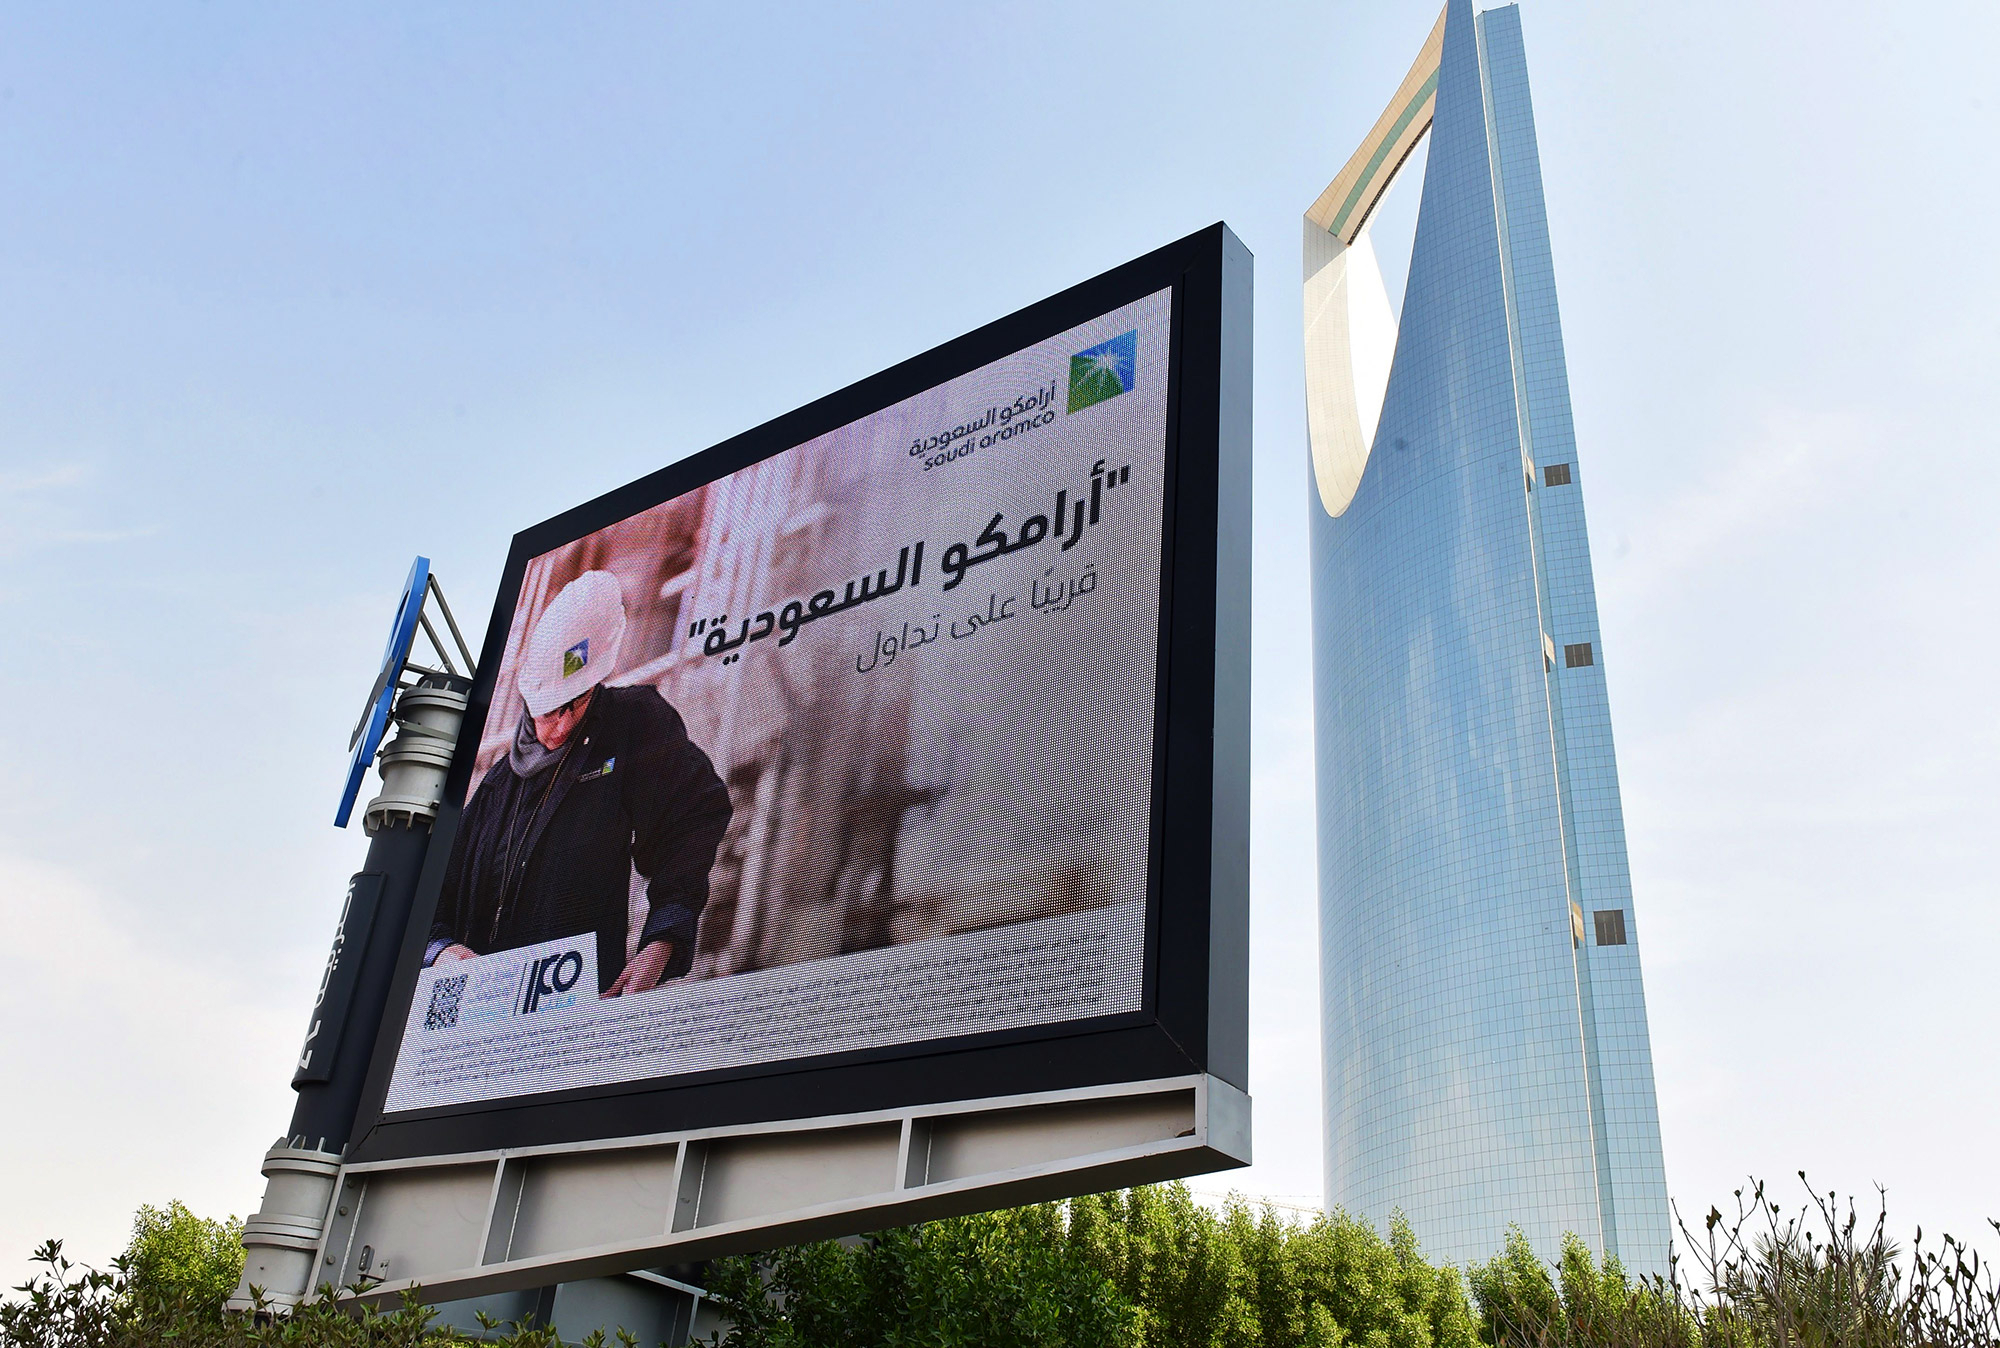 Saudi Aramco Ipo News: Here'S What Analysts Are Saying intended for Armco Operational Calendar 2021